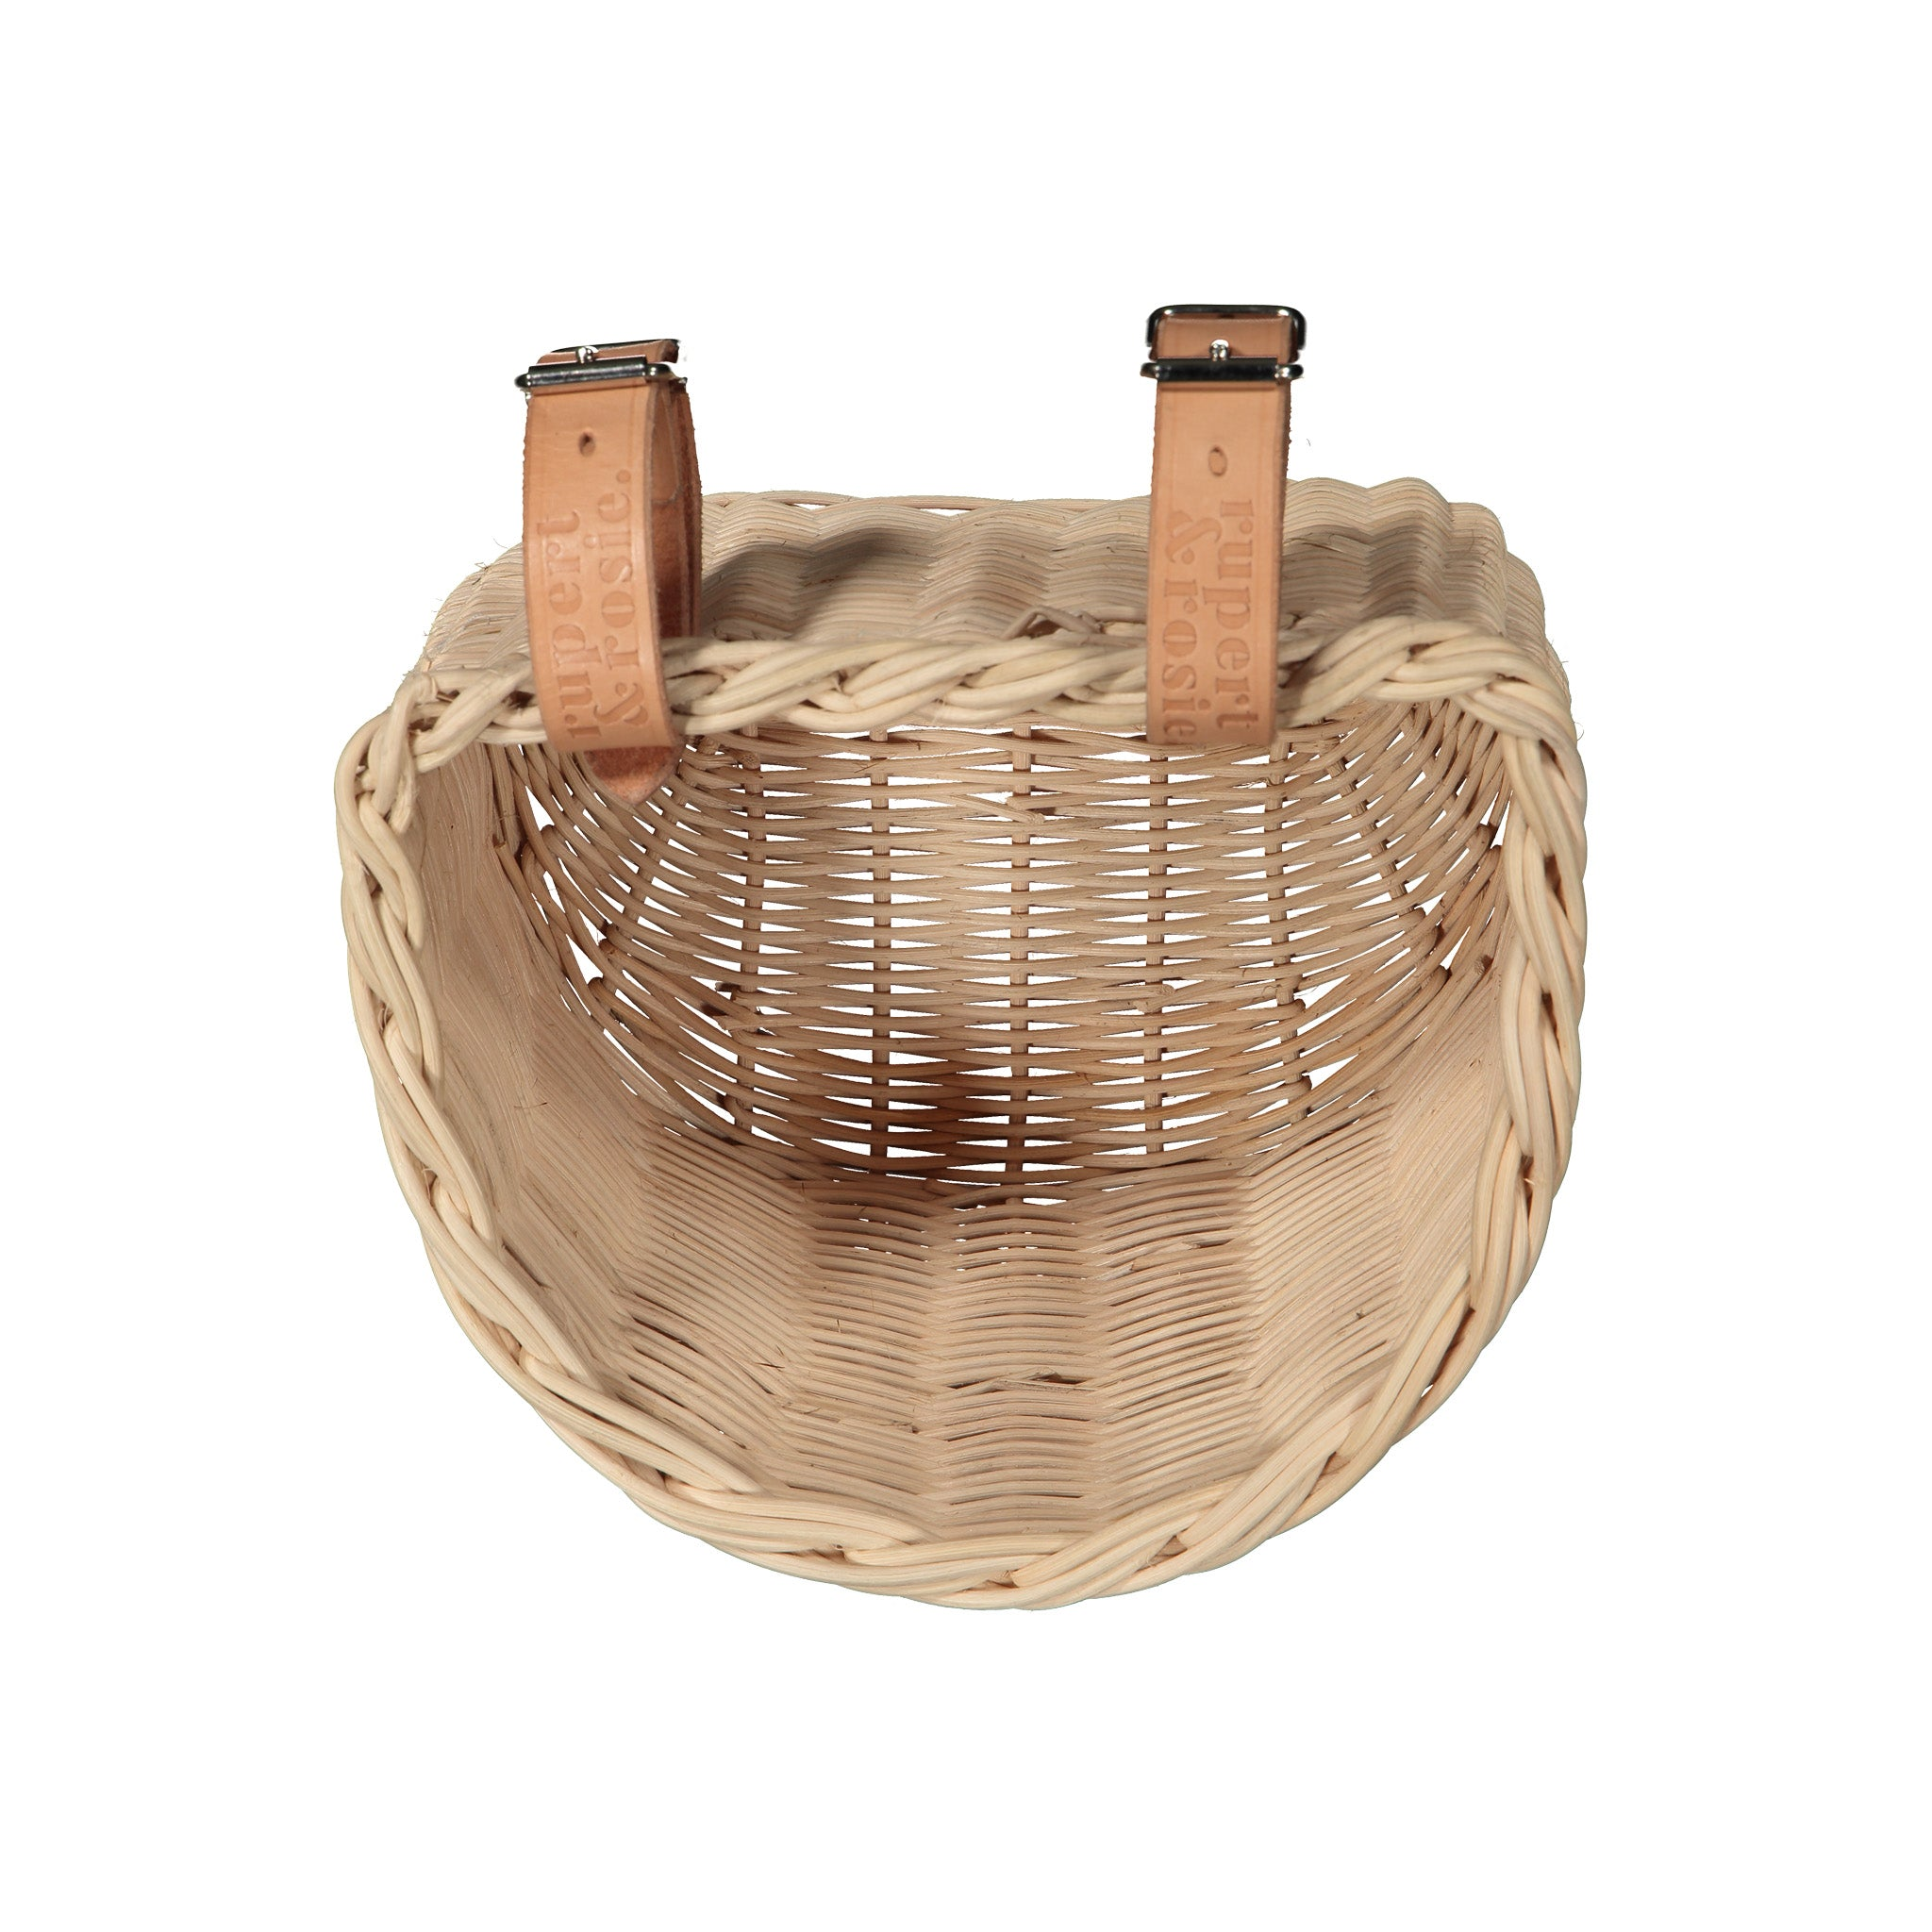 Hand-woven Cane Bike Basket With Leather Straps